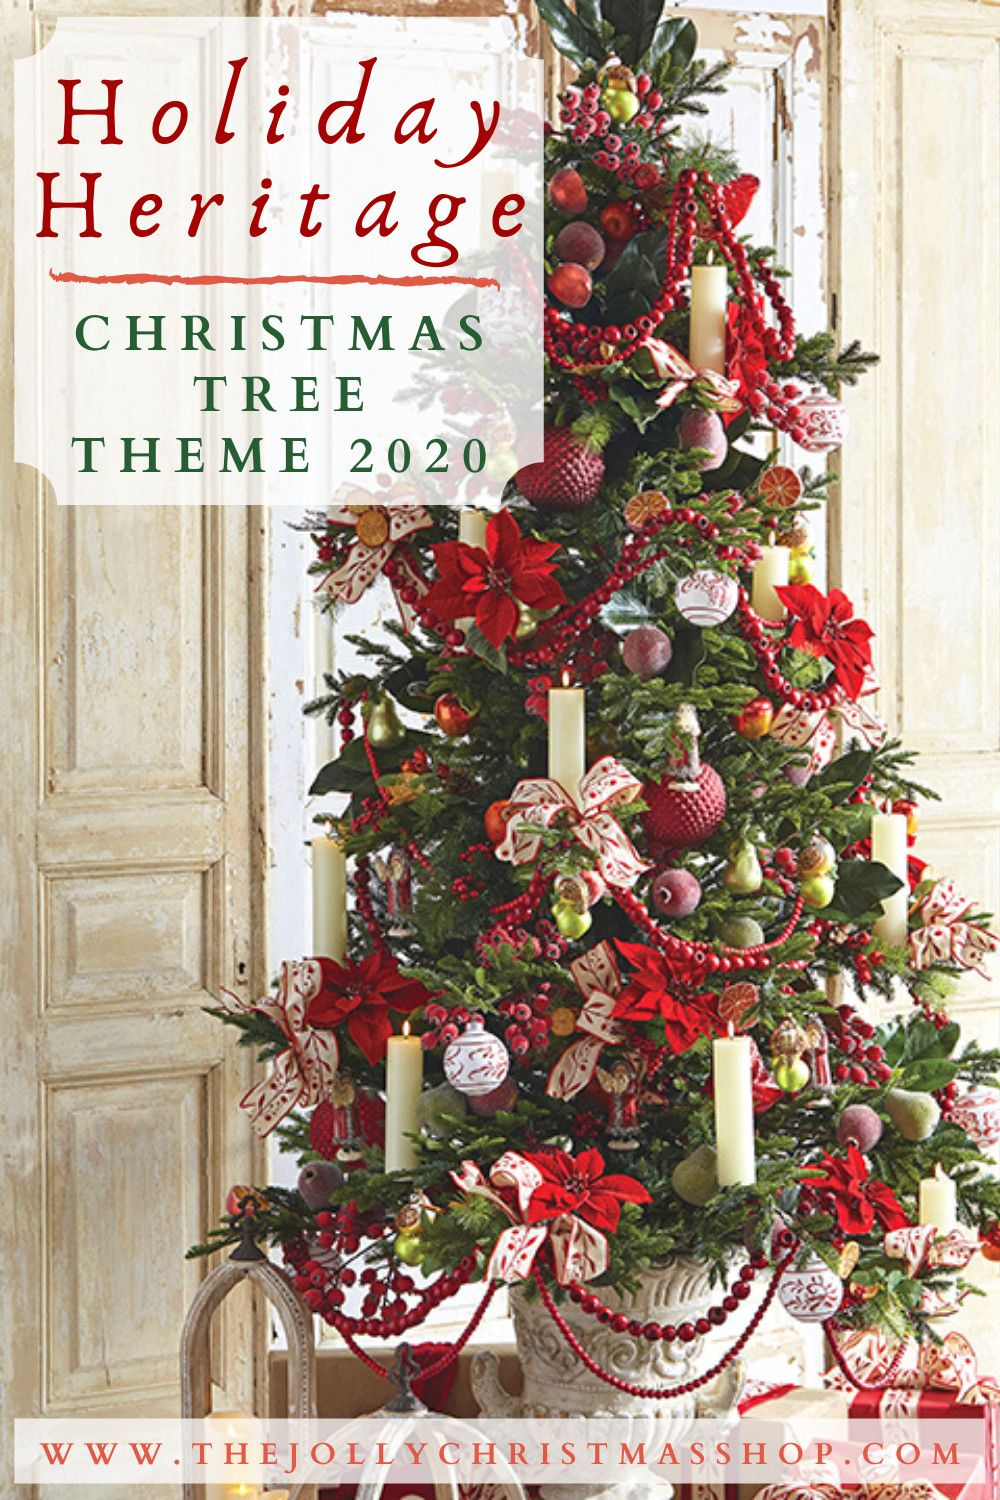 Christmas Theme For 2020 NEW for 2020! Our Holiday Heritage Christmas Tree Theme